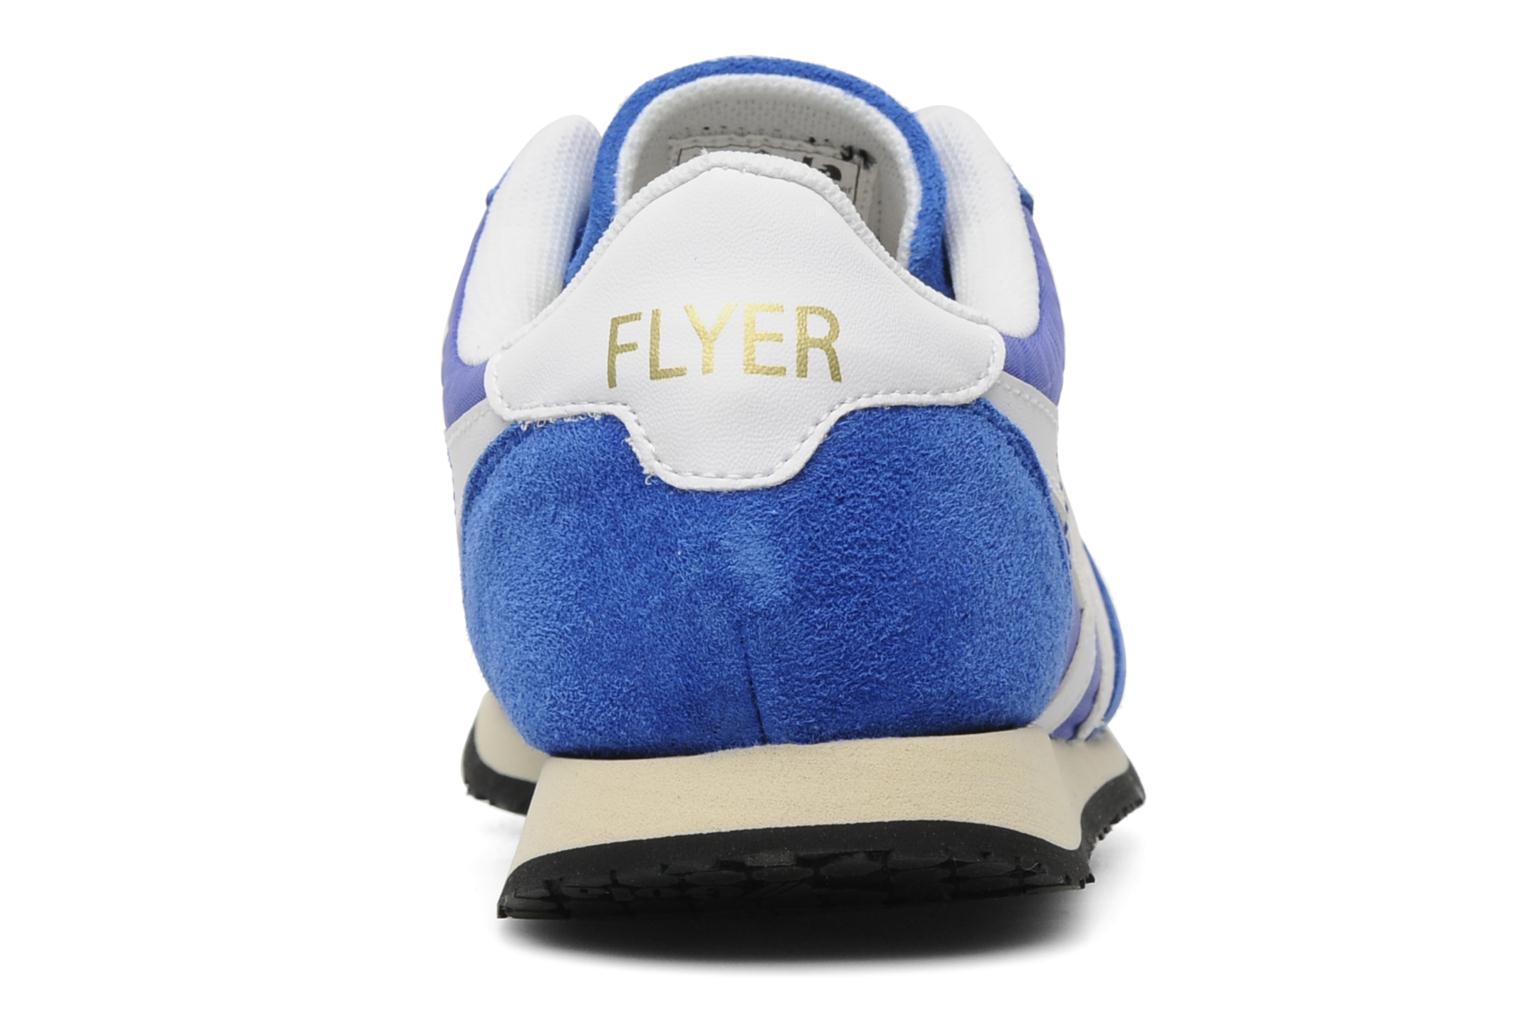 FLYER Reflex blue/white